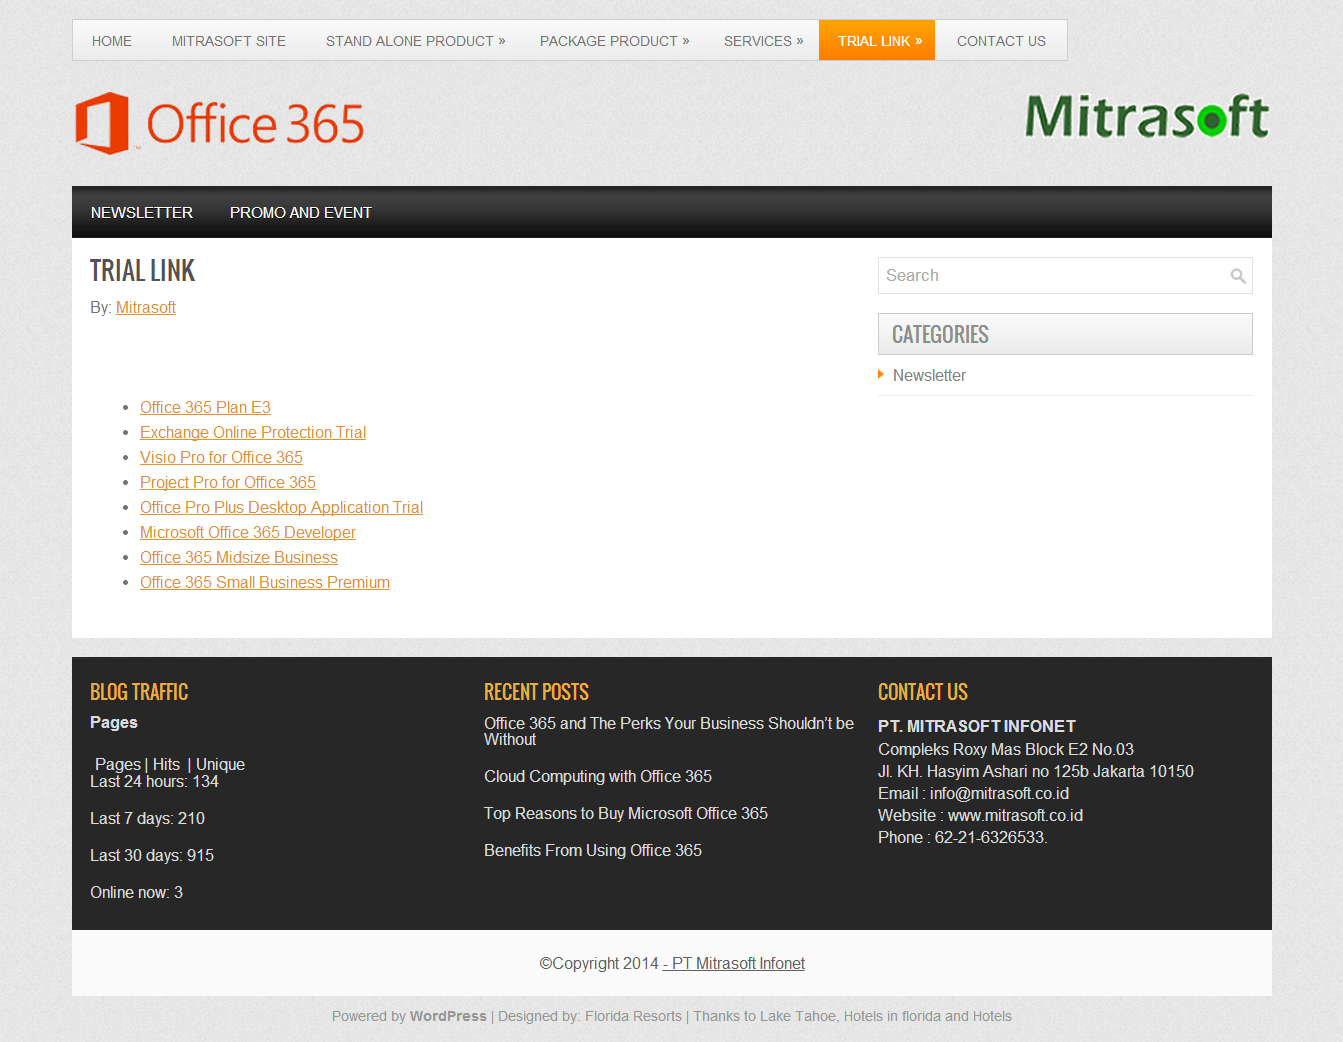 mitrasoft download office365 trial office 365 plan e3 office 365 plan e3 - Visio Microsoft Trial